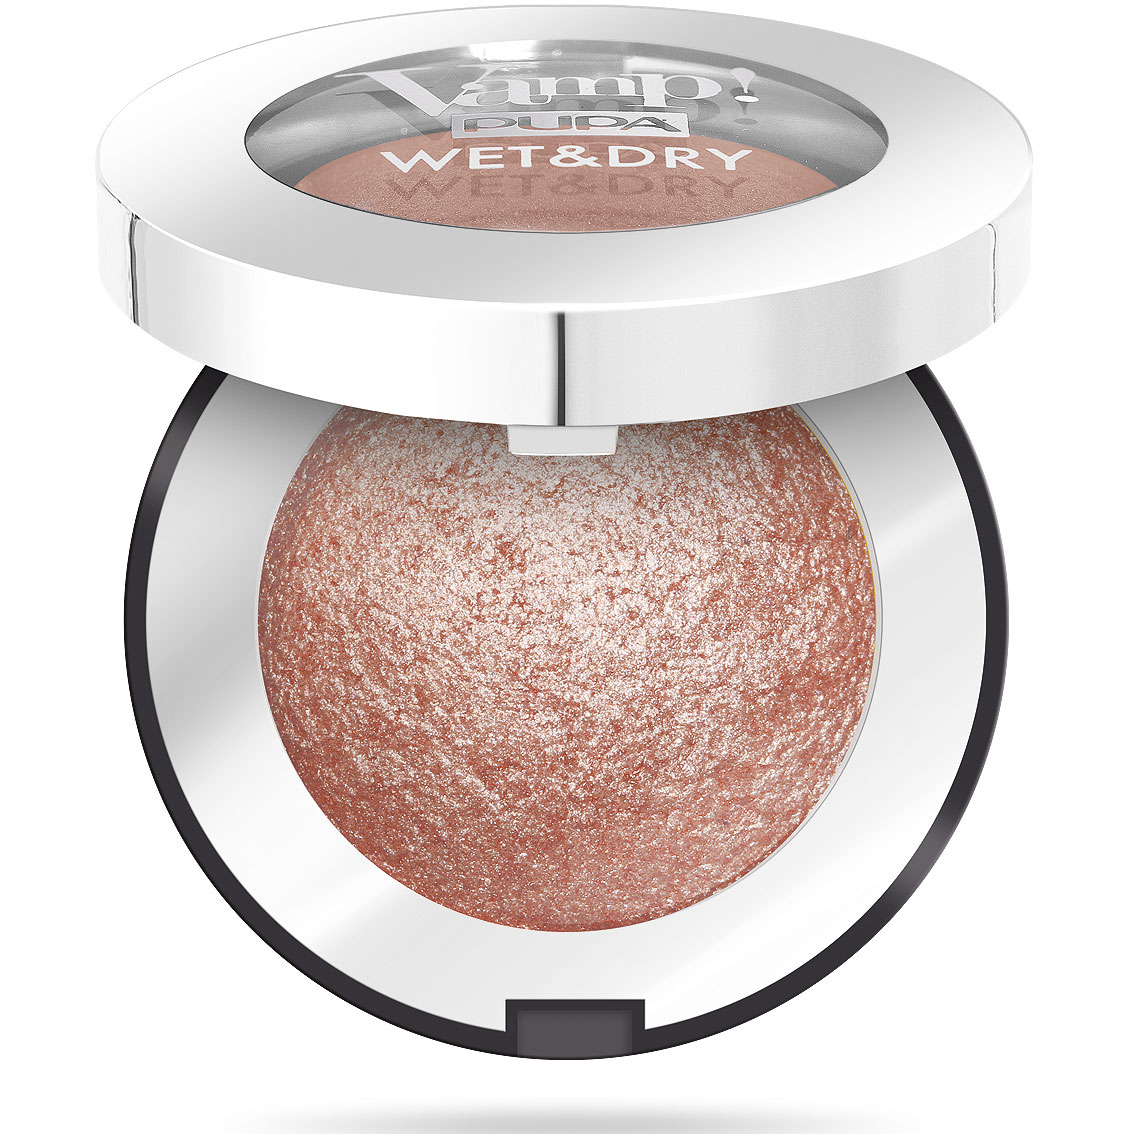 Pupa Vamp! Wet & Dry Ombretto n. 103 rose gold